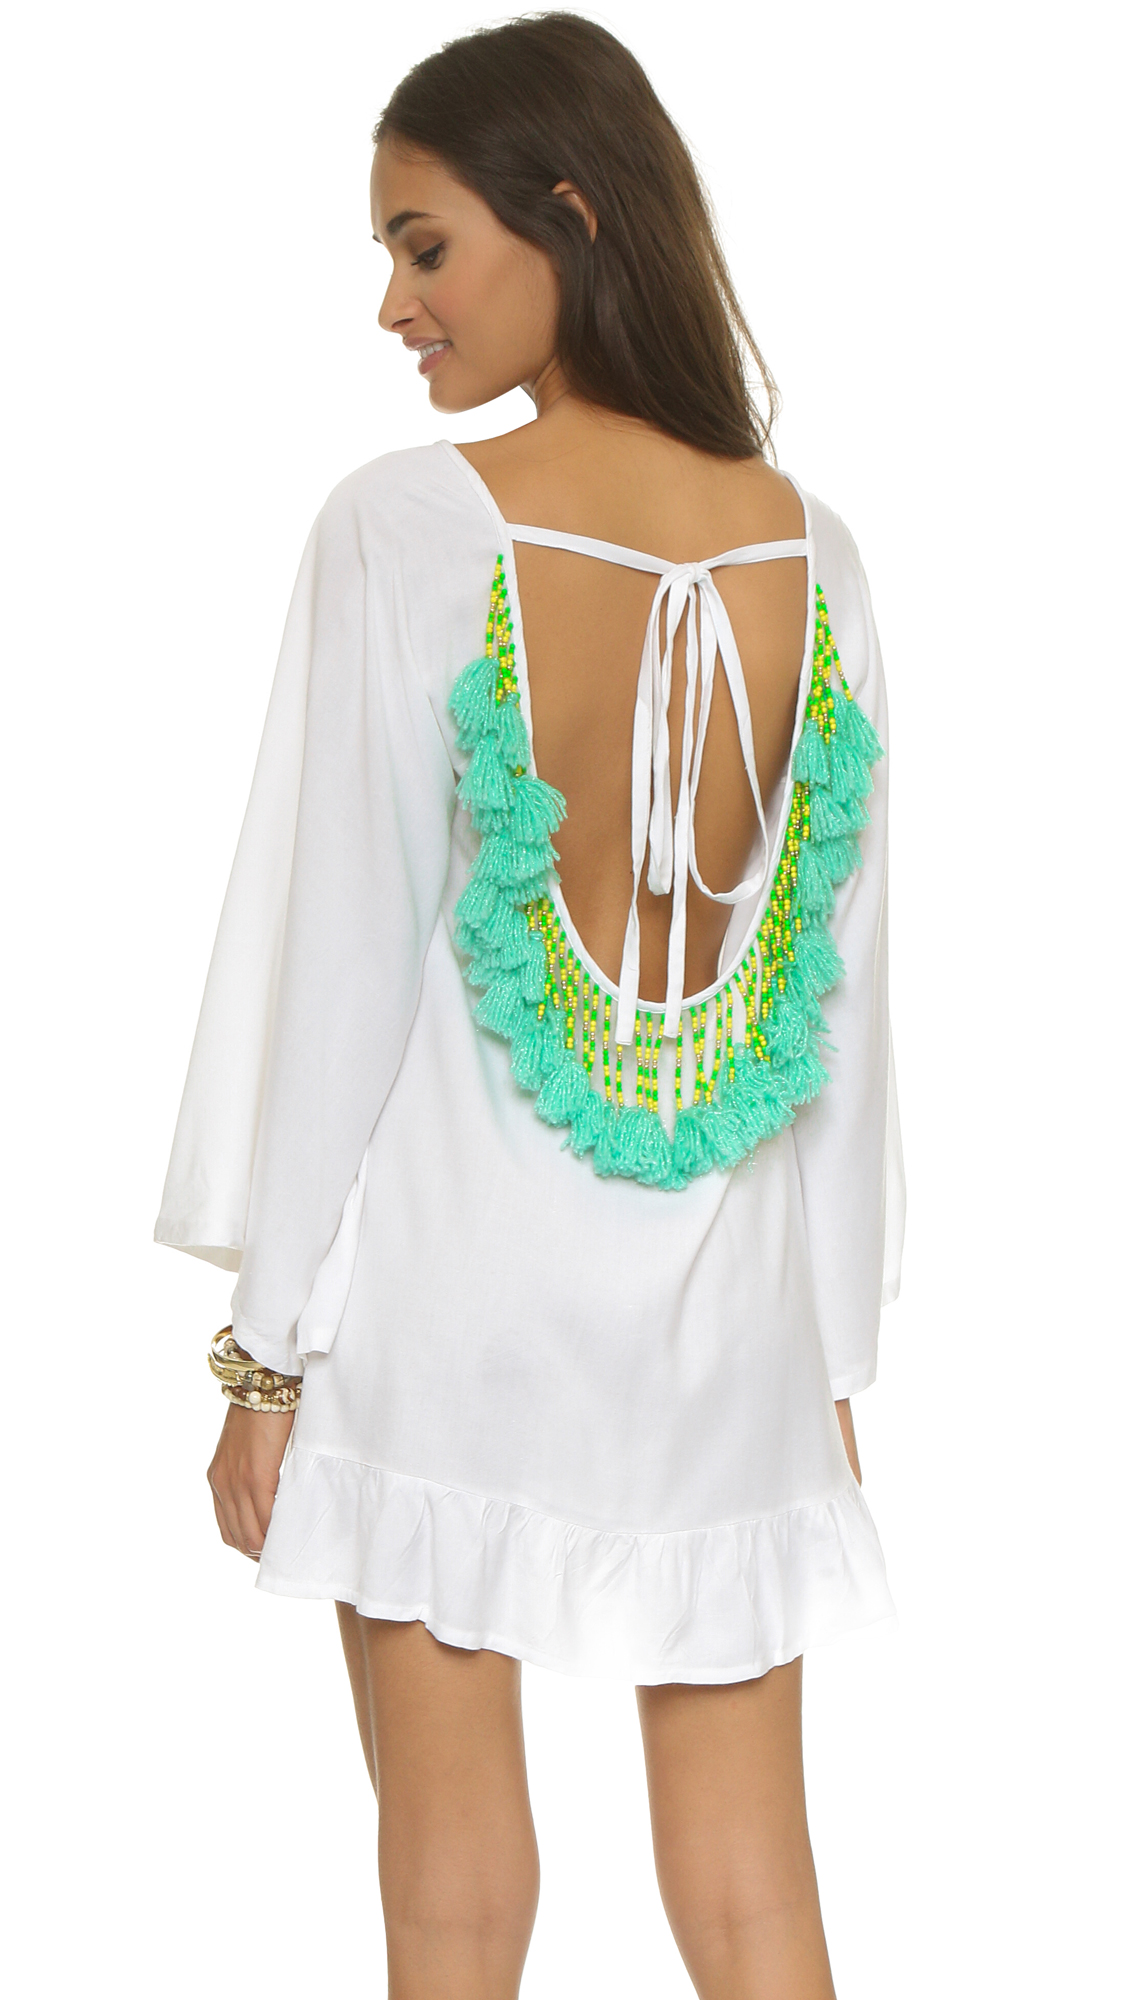 Beads and yarn form bold neon tassels on this SUNDRESS cover-up. Tie closure in back. Kimono sleeves. Fabric: Soft weave. 100% viscose. Hand wash. Imported, India. Measurements Length: 32in / 81cm, from shoulder Measurements from size S